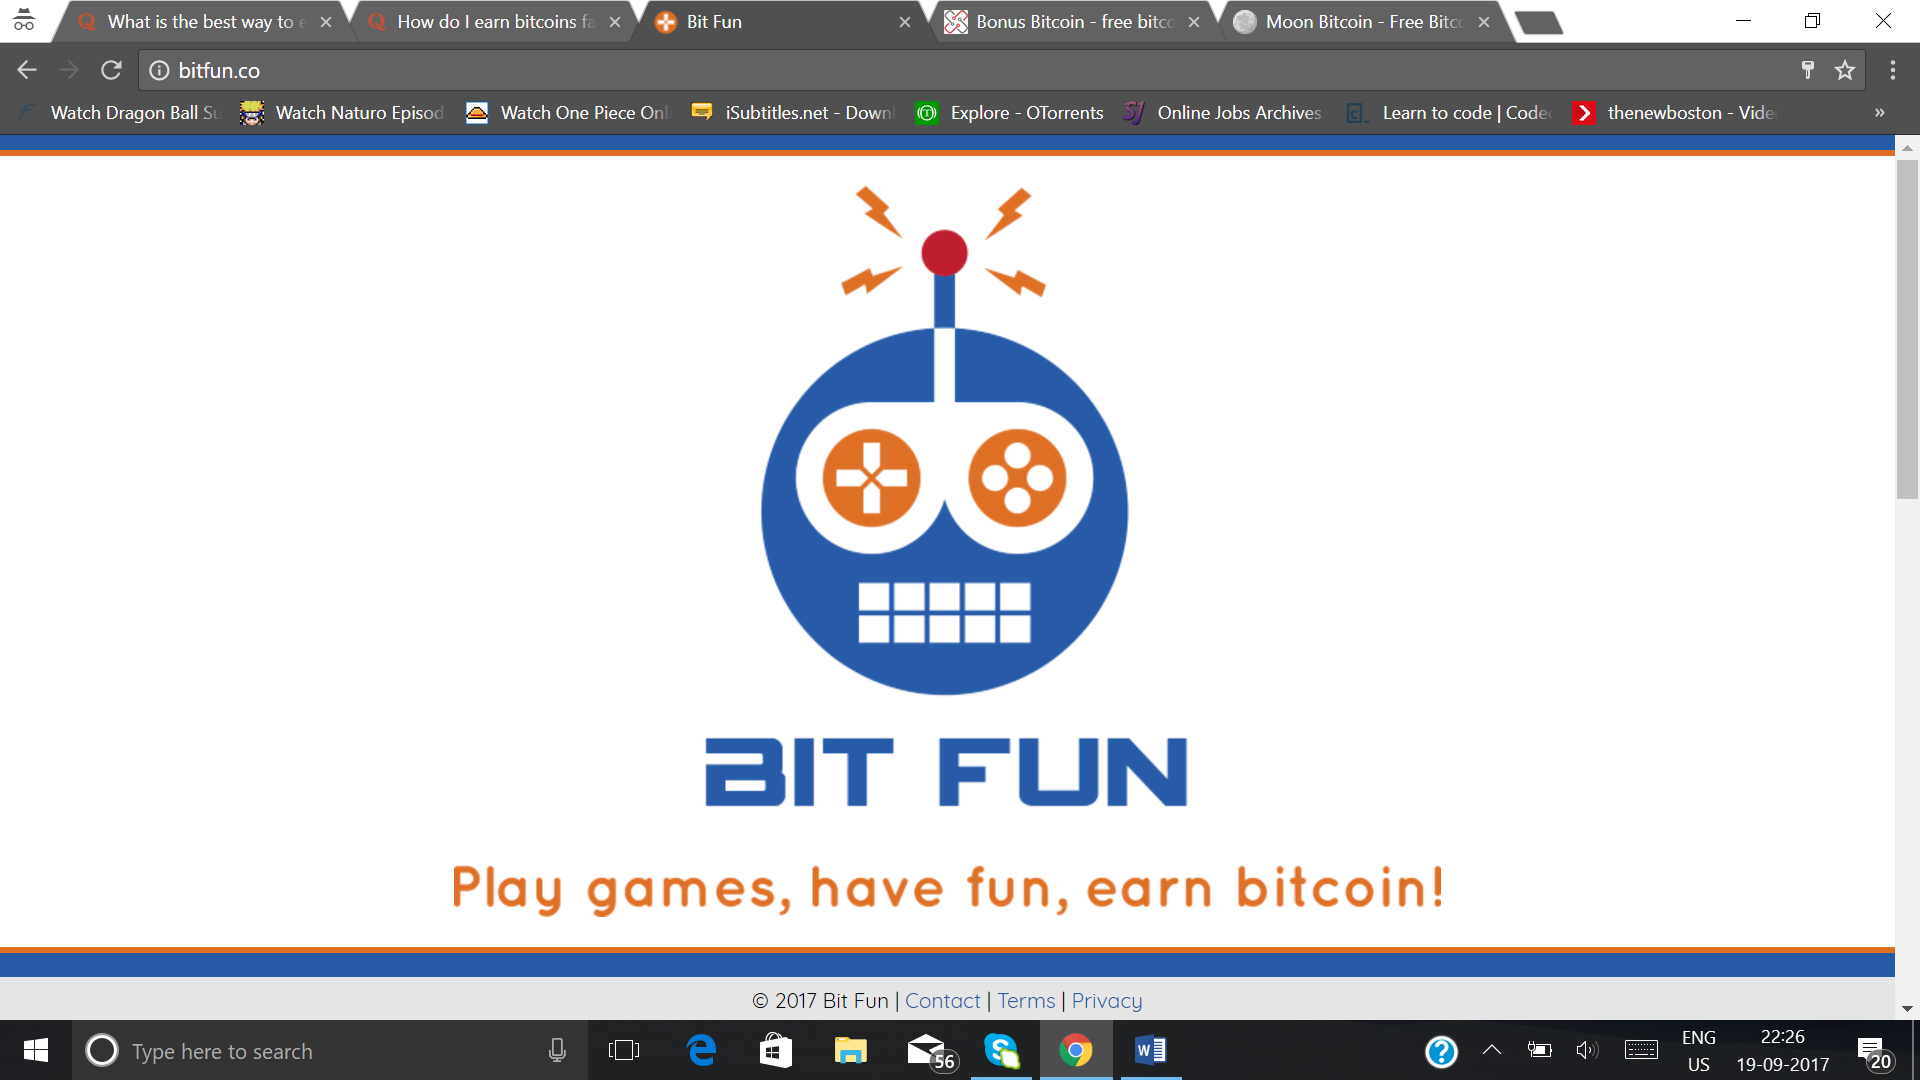 How to earn Bitcoins and add them to my bank, or use it online to